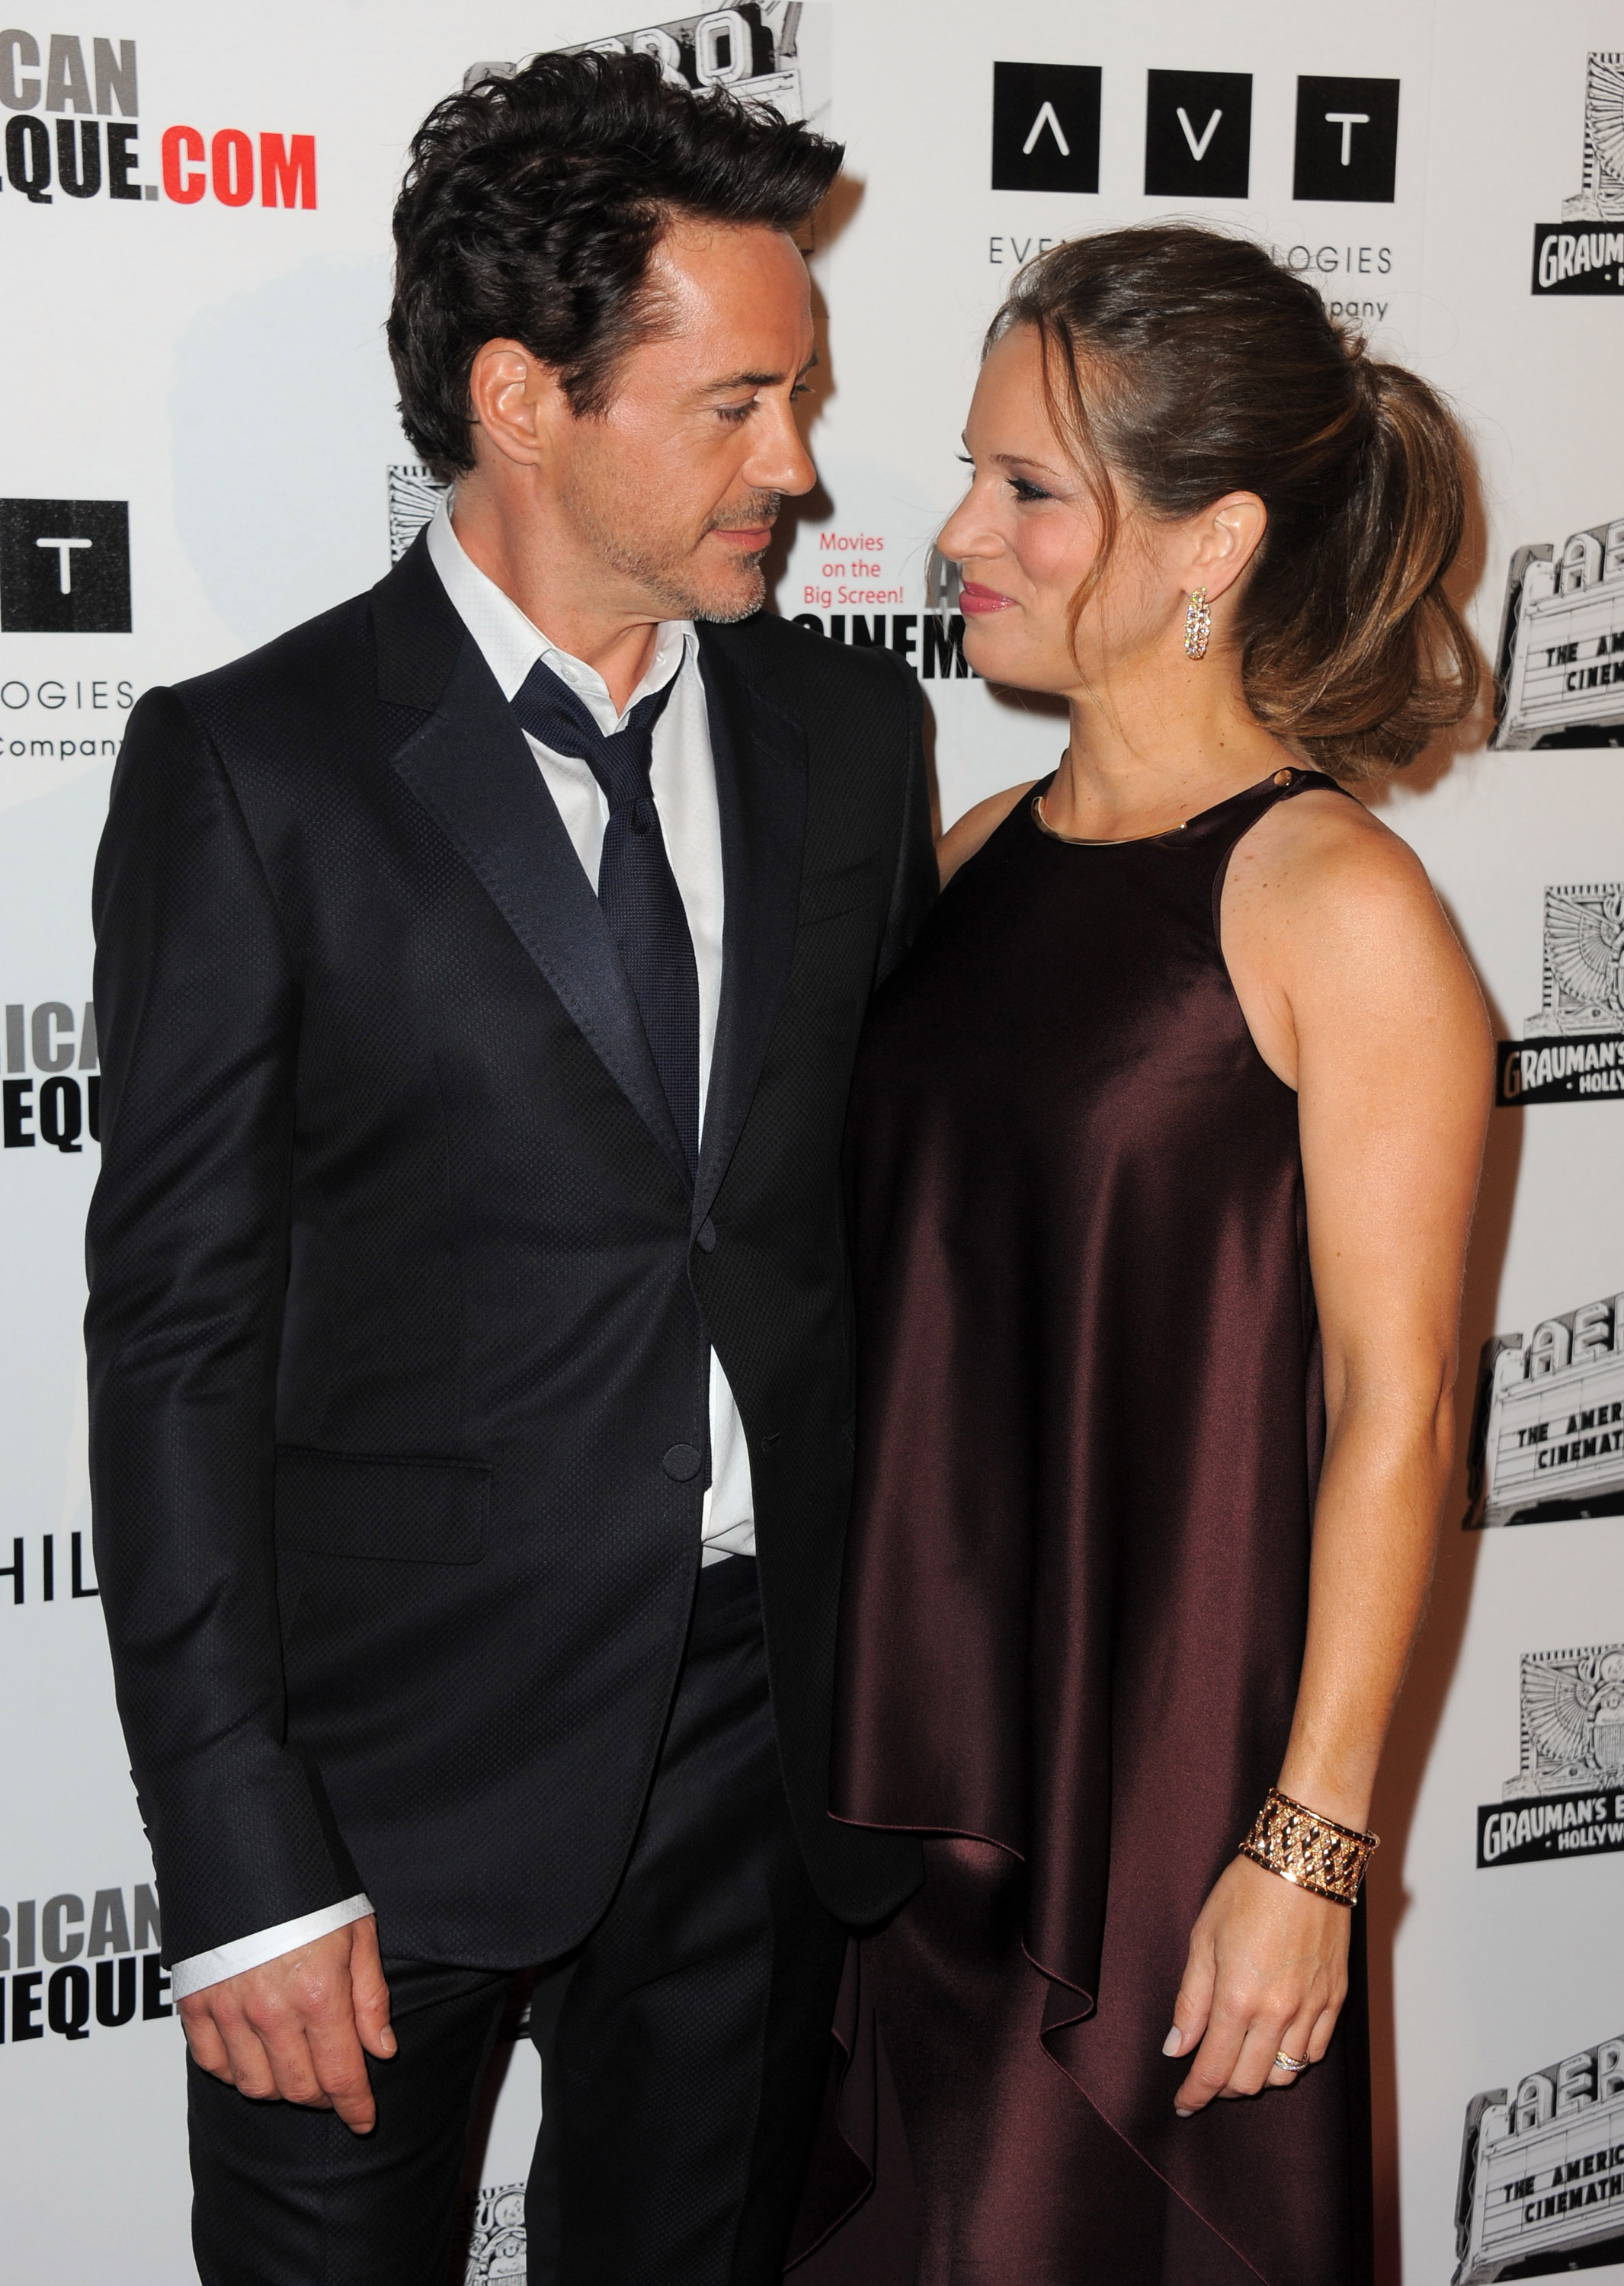 Robert Downey Jr. and his wife, Susan, are expecting their first child together.